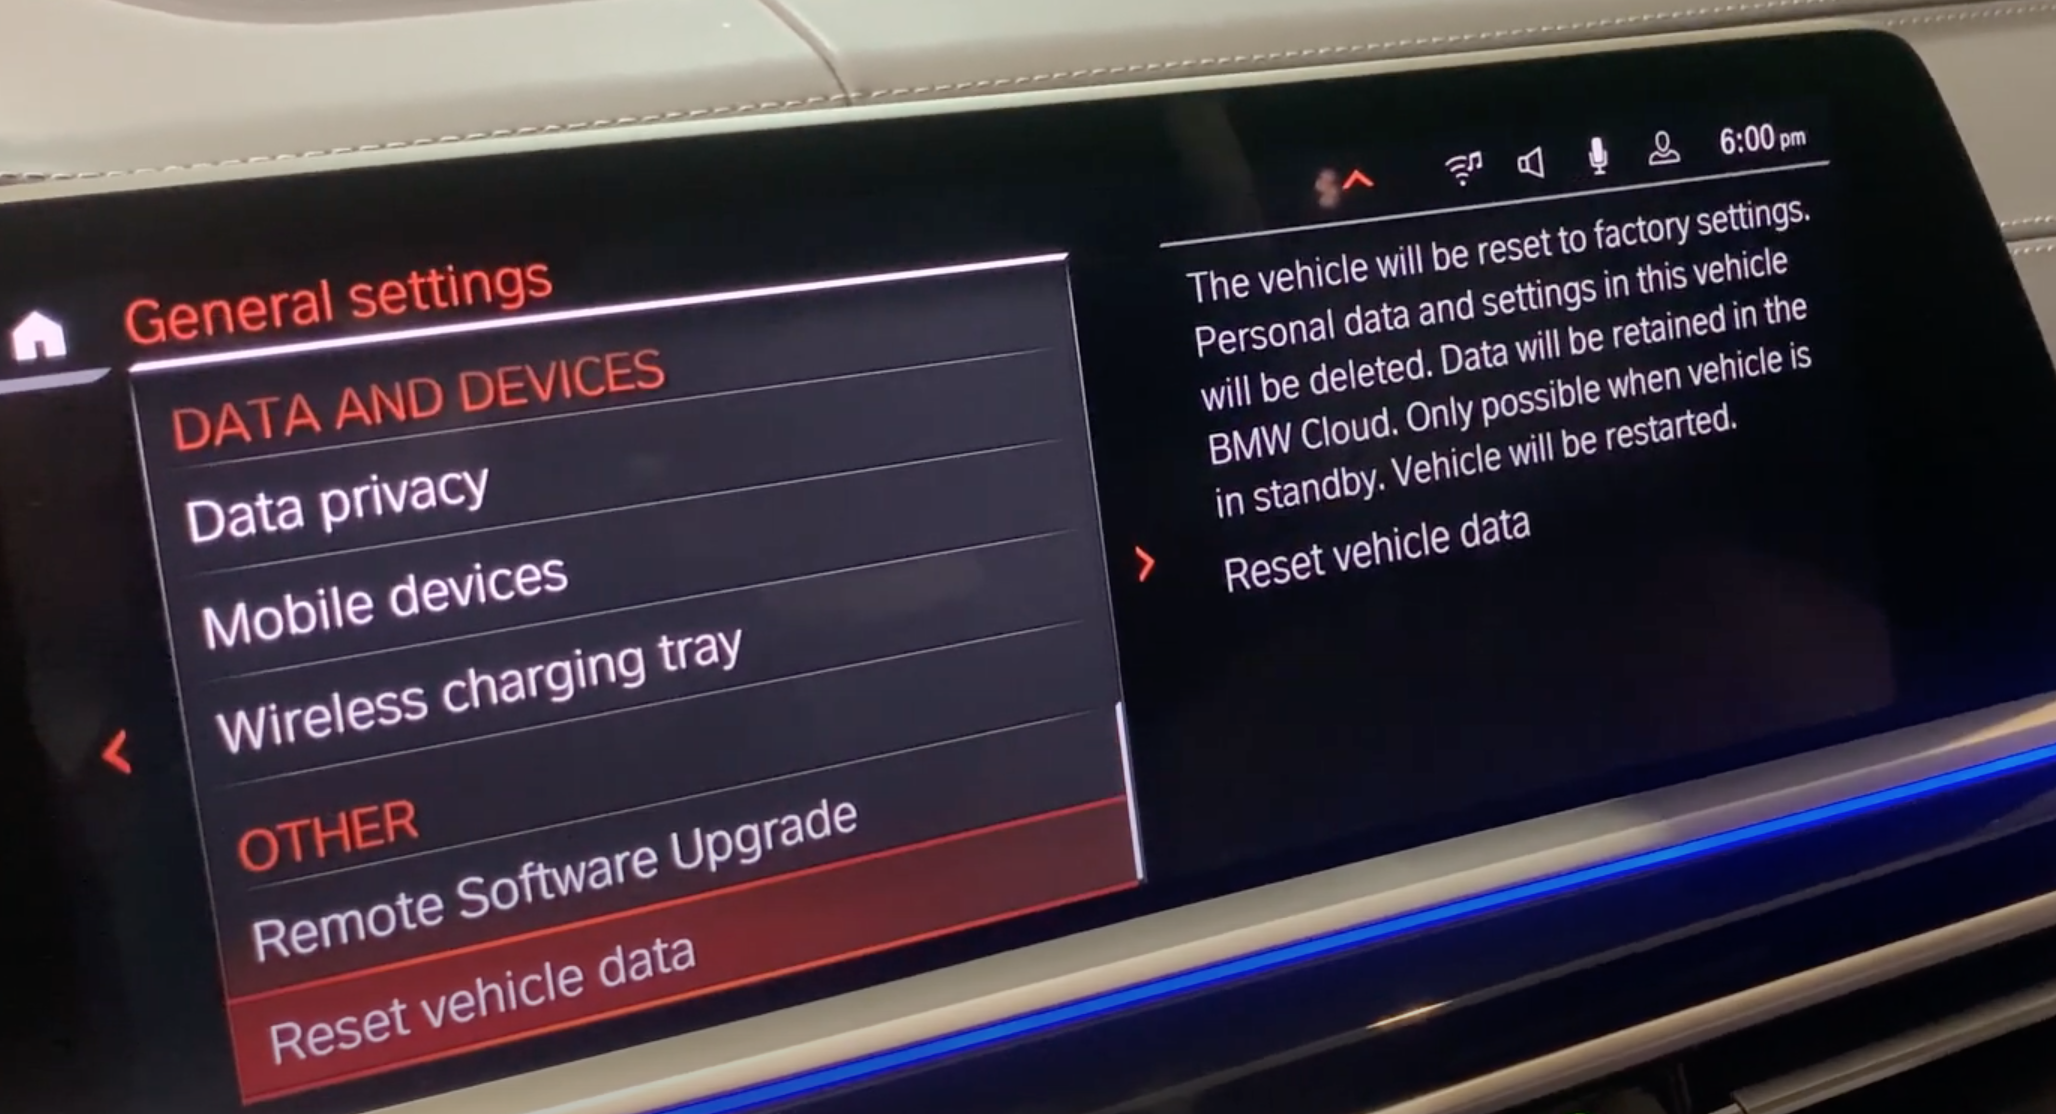 Reset vehicle data option chosen from a list of general vehicle settings